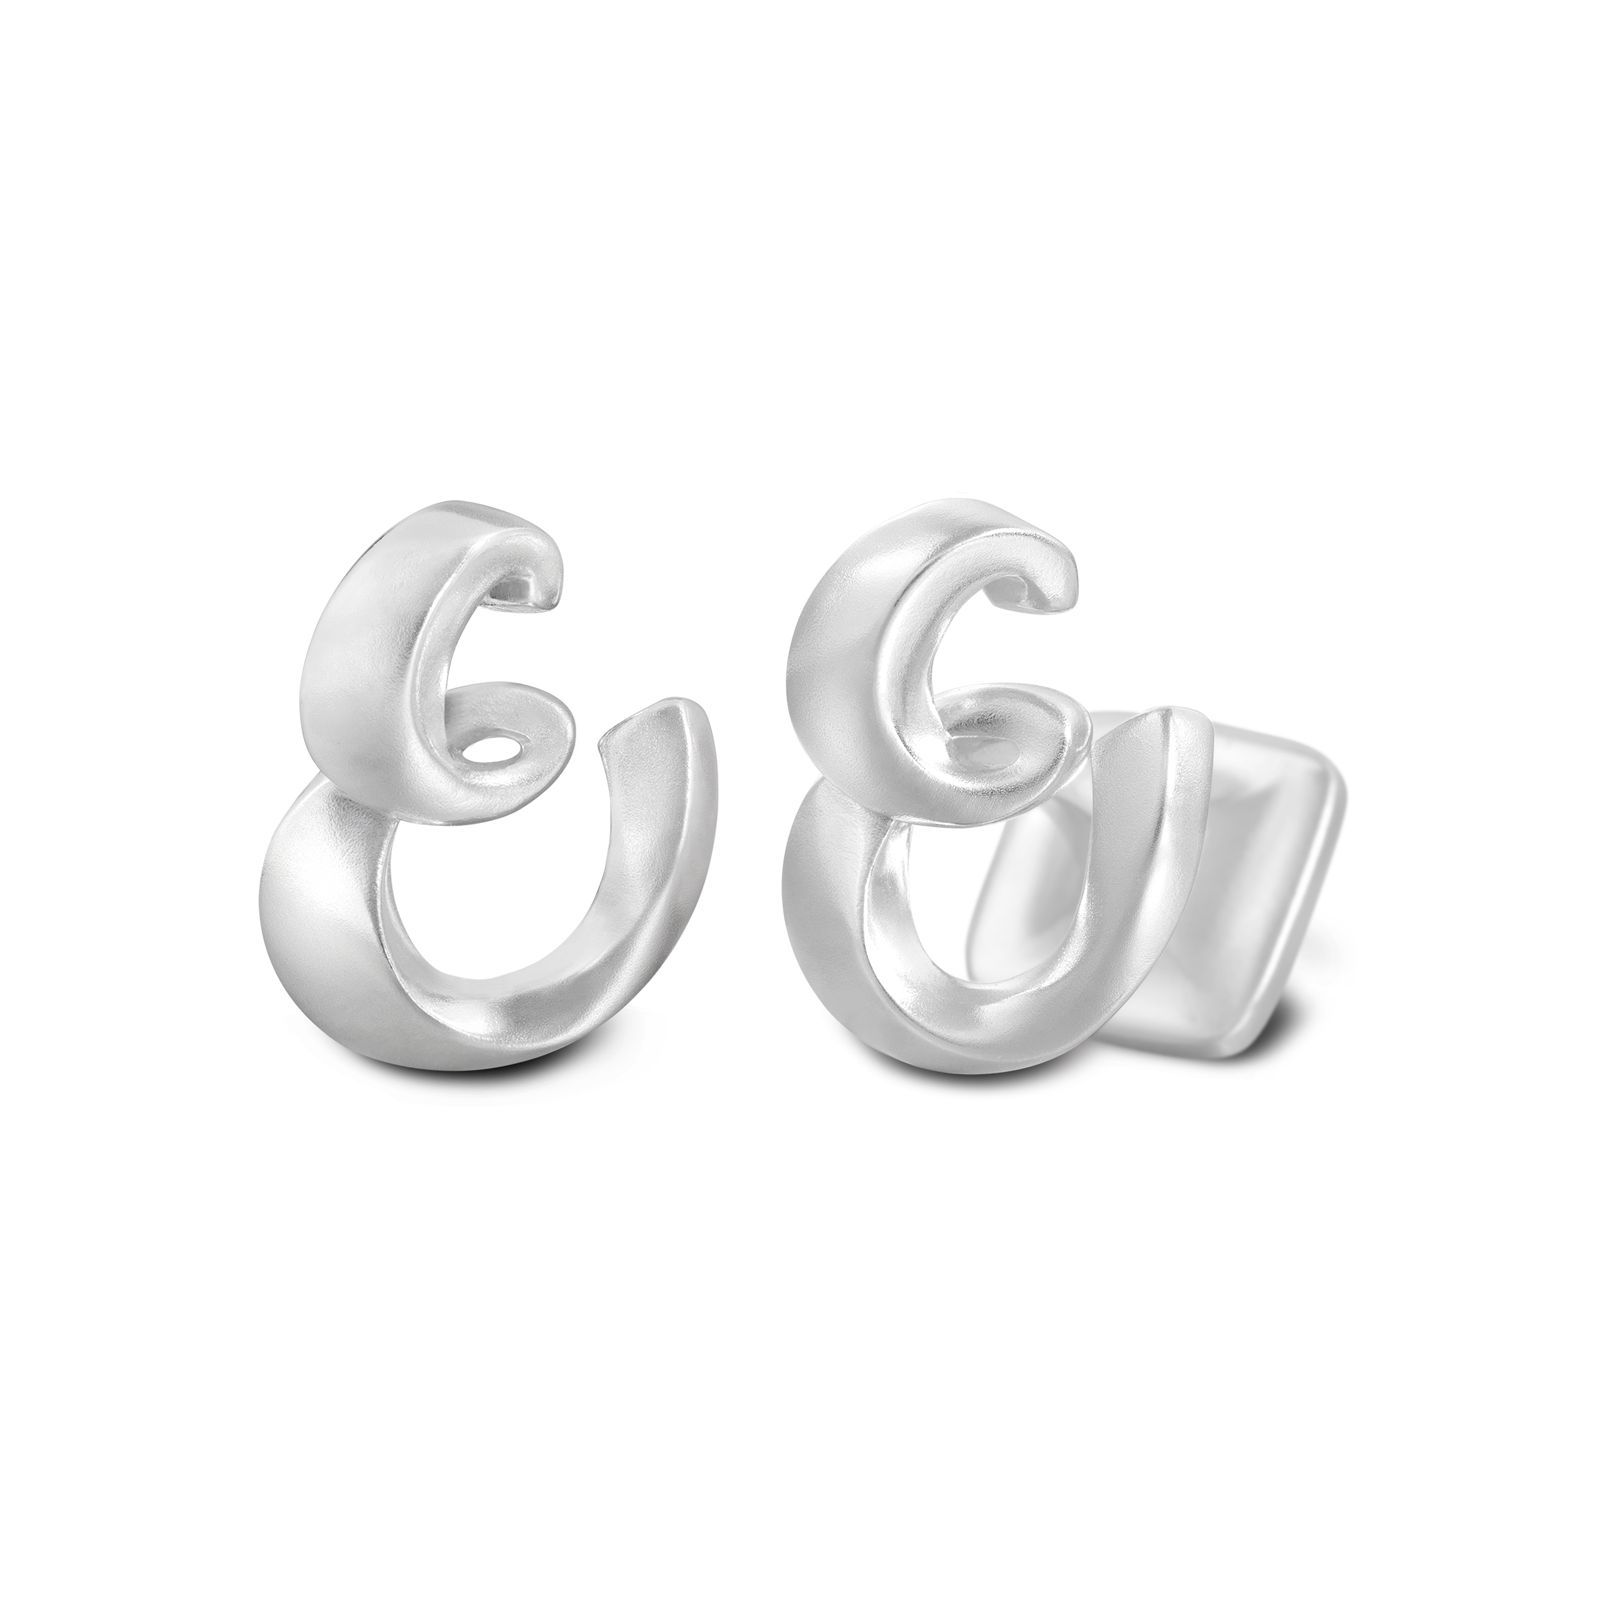 Signature Sterling Silver Cuff Link In Mist Finish Letter E